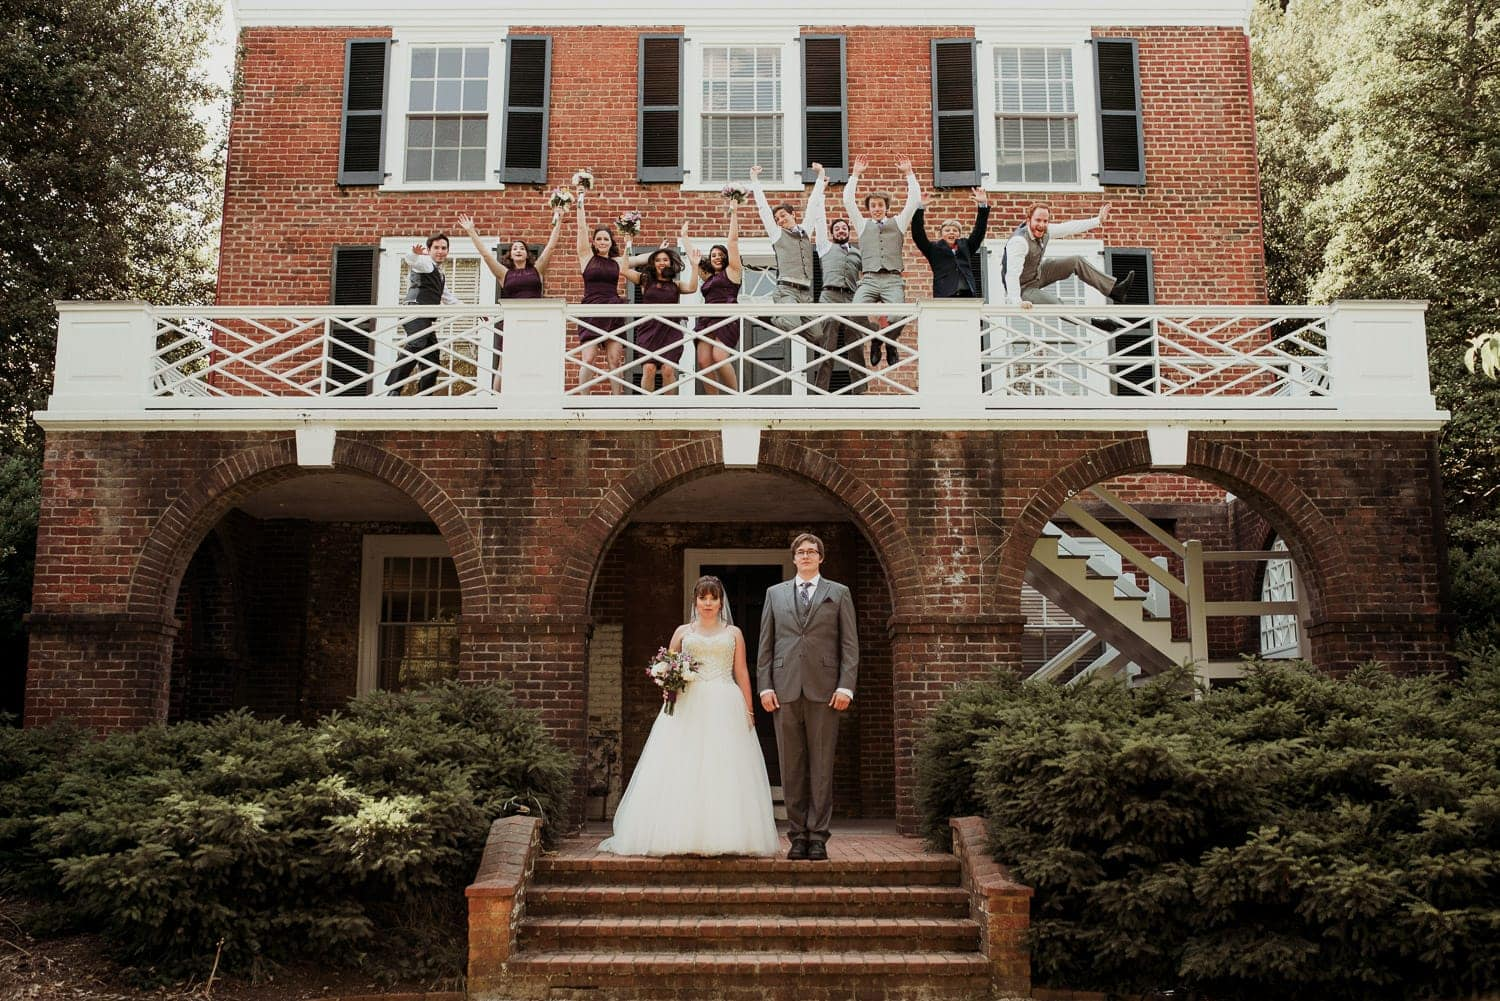 The bride and groom are holding hands and facing the camera. The wedding party is above them on a balcony. They are leaping in the air.